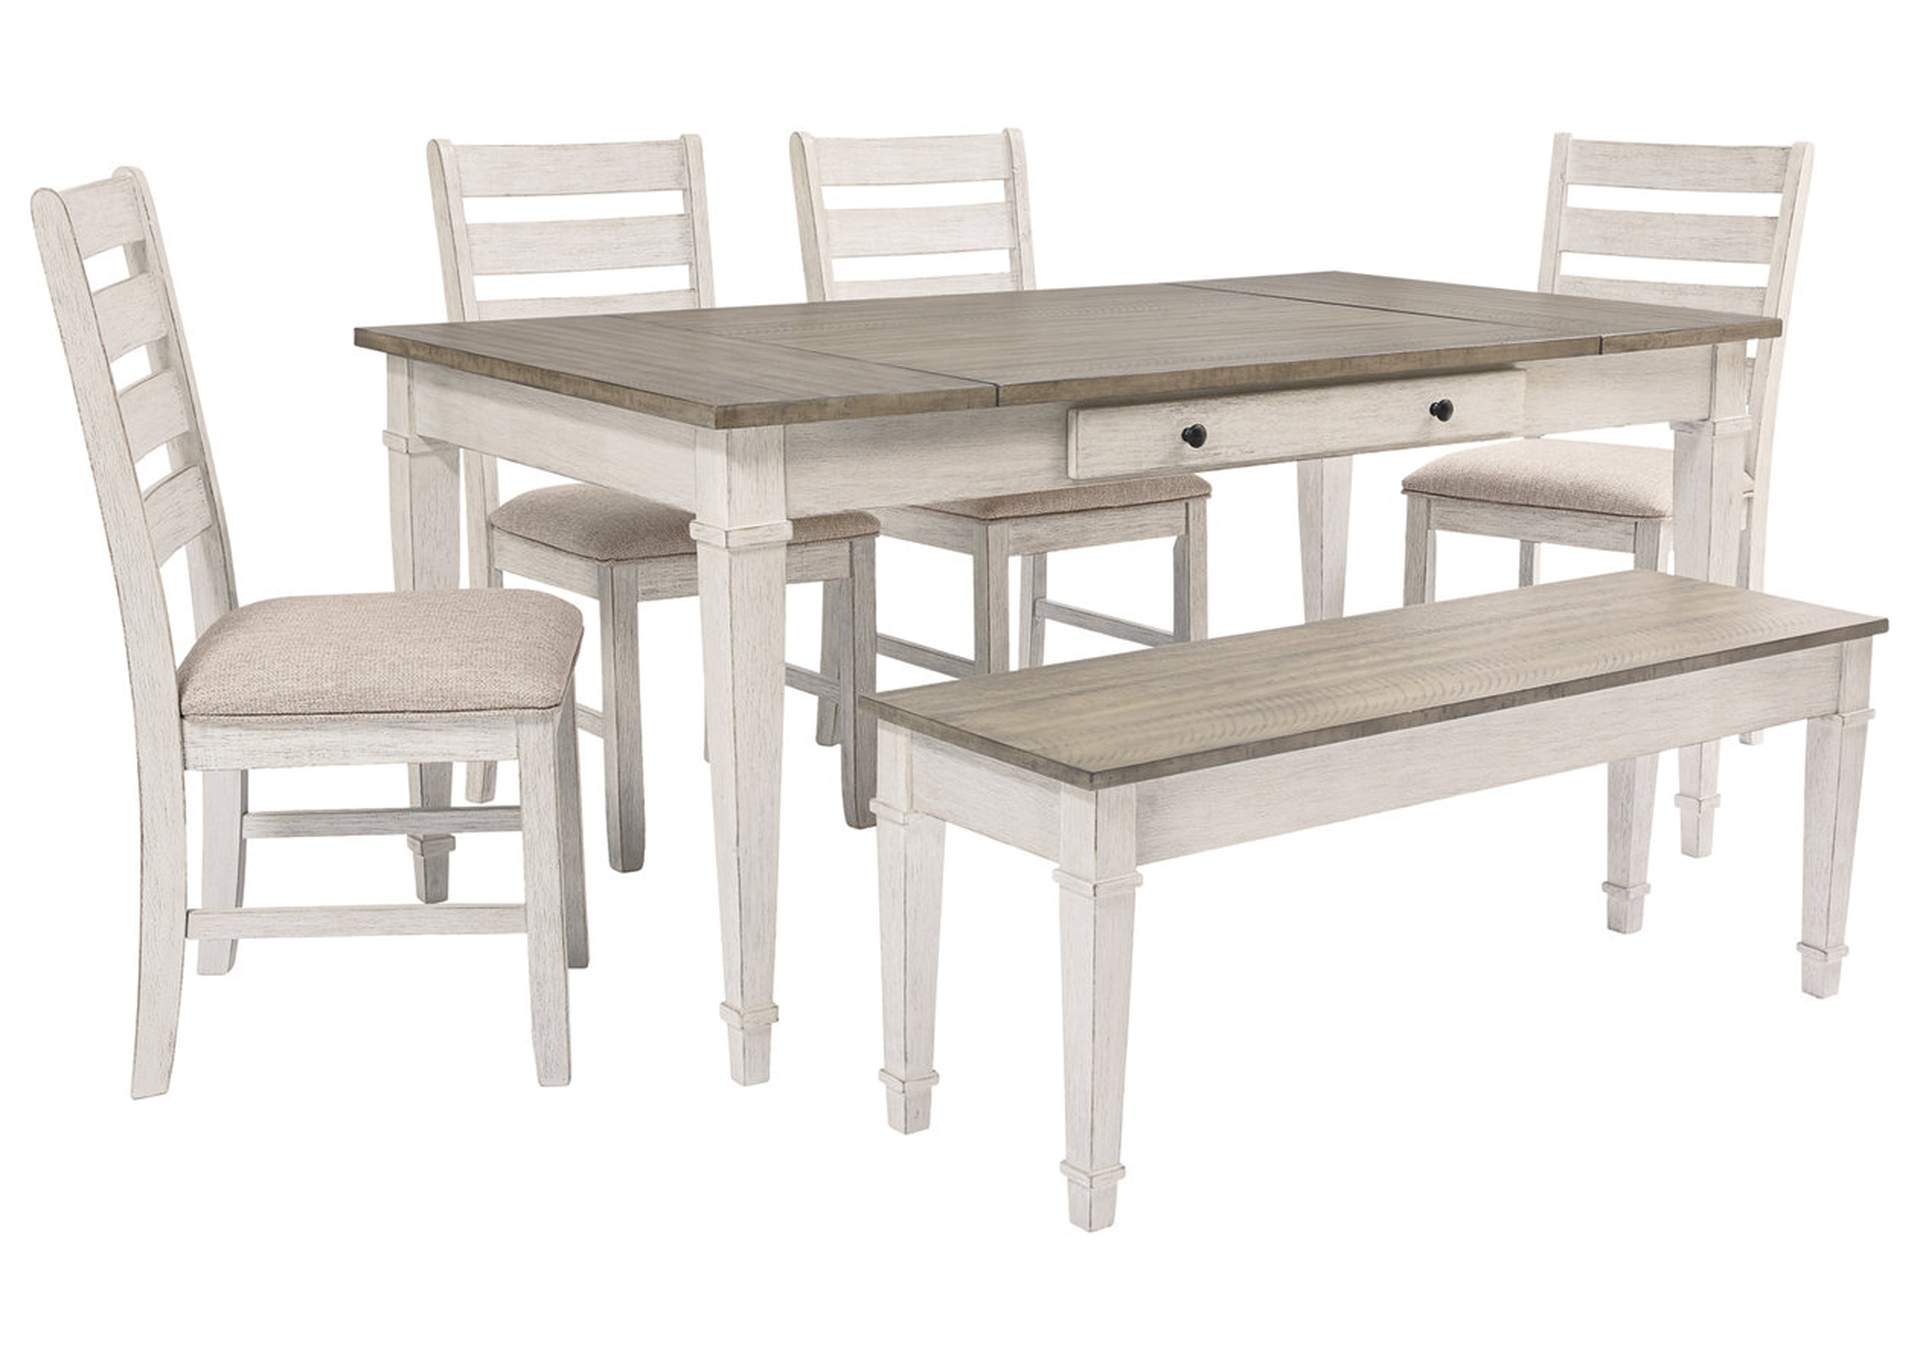 Skempton Dining Room Table w/4 Chairs and Bench,Signature Design By Ashley